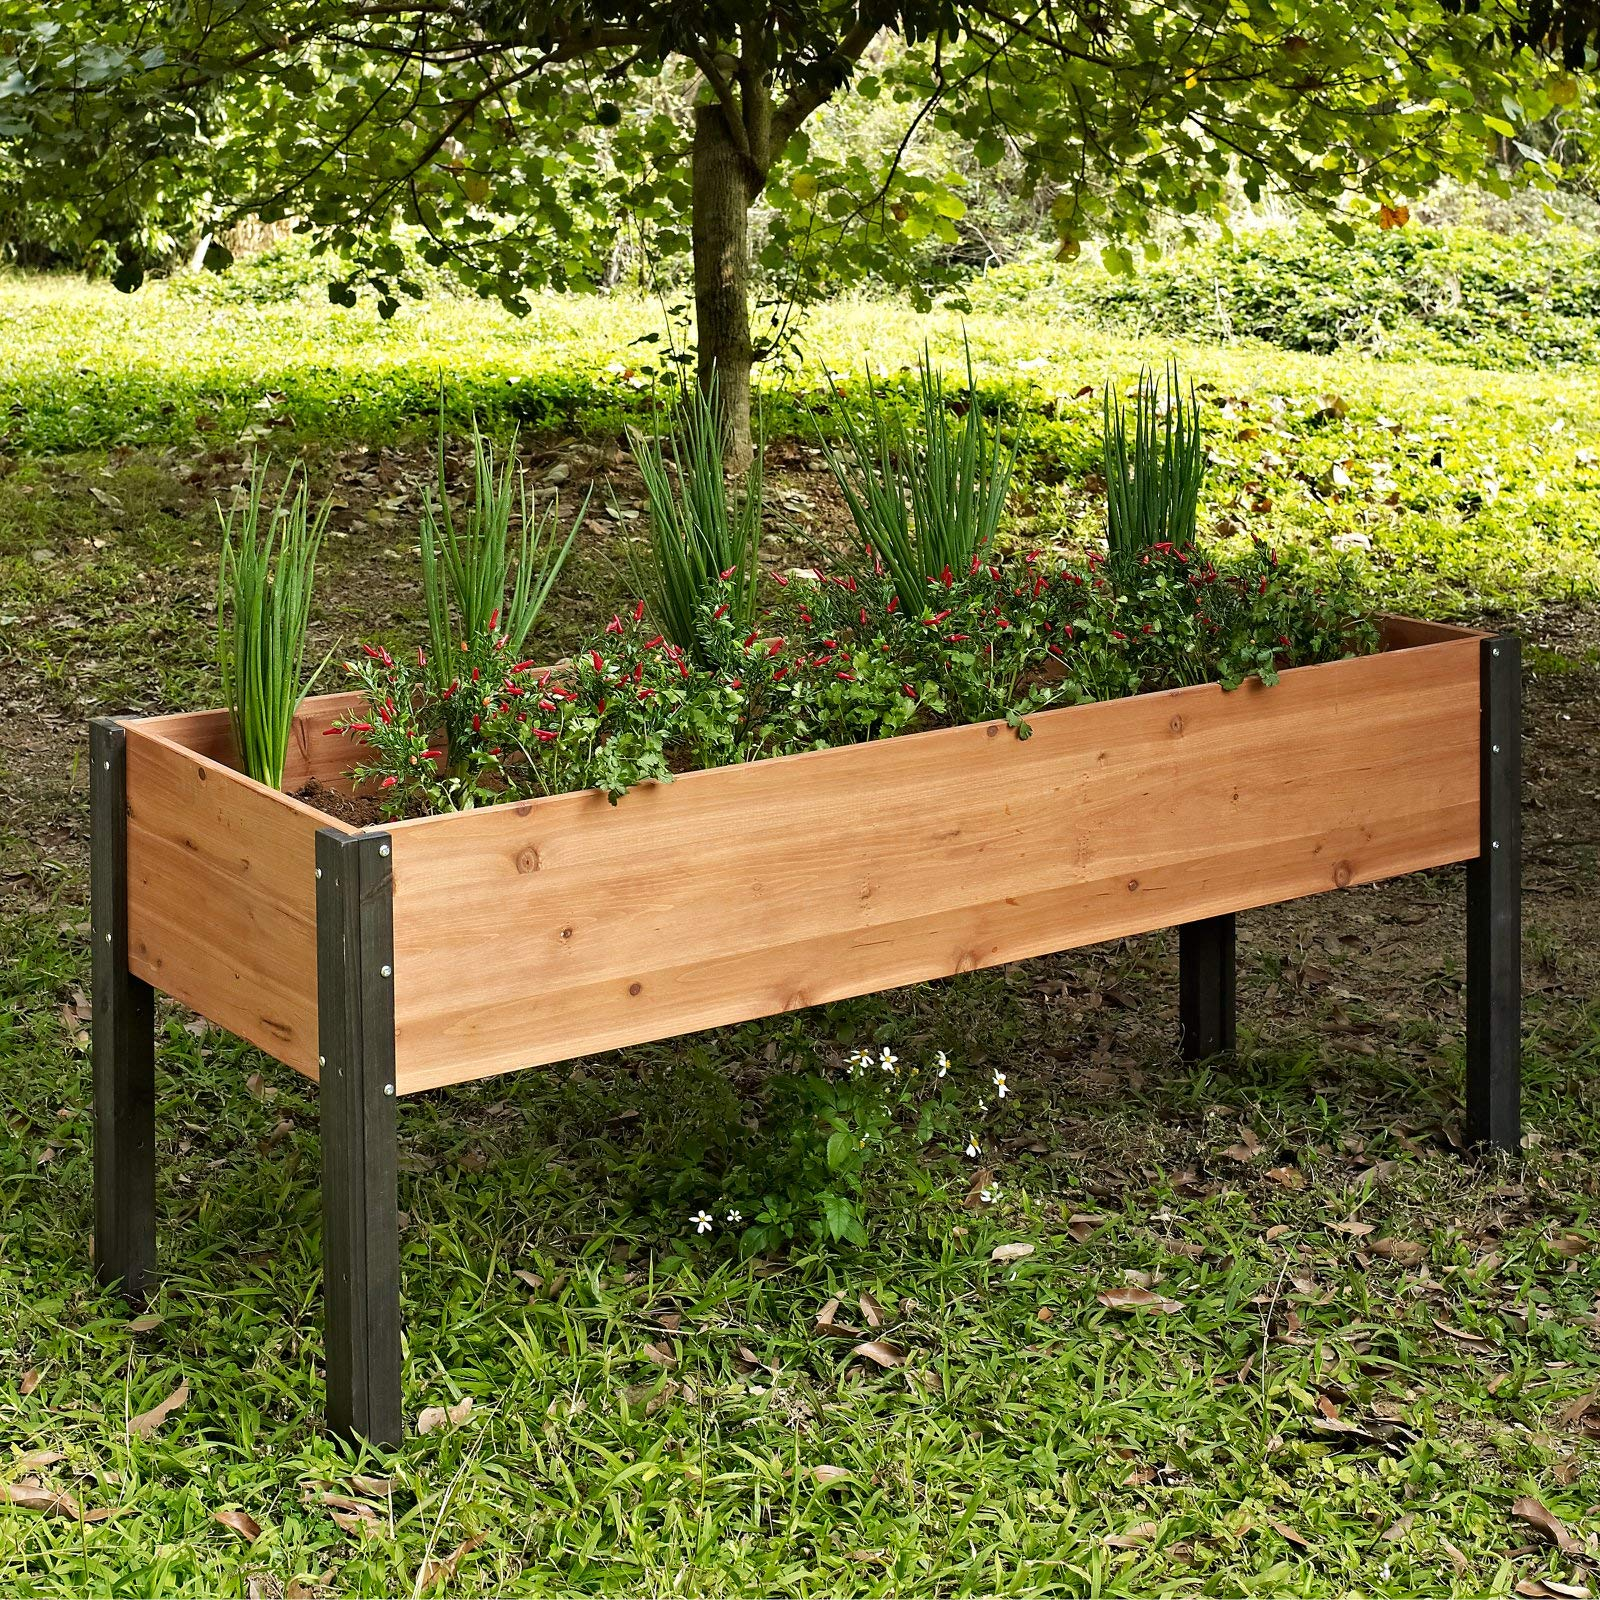 CHEAP Garden Bed Elevated Wood Raised Planter Box